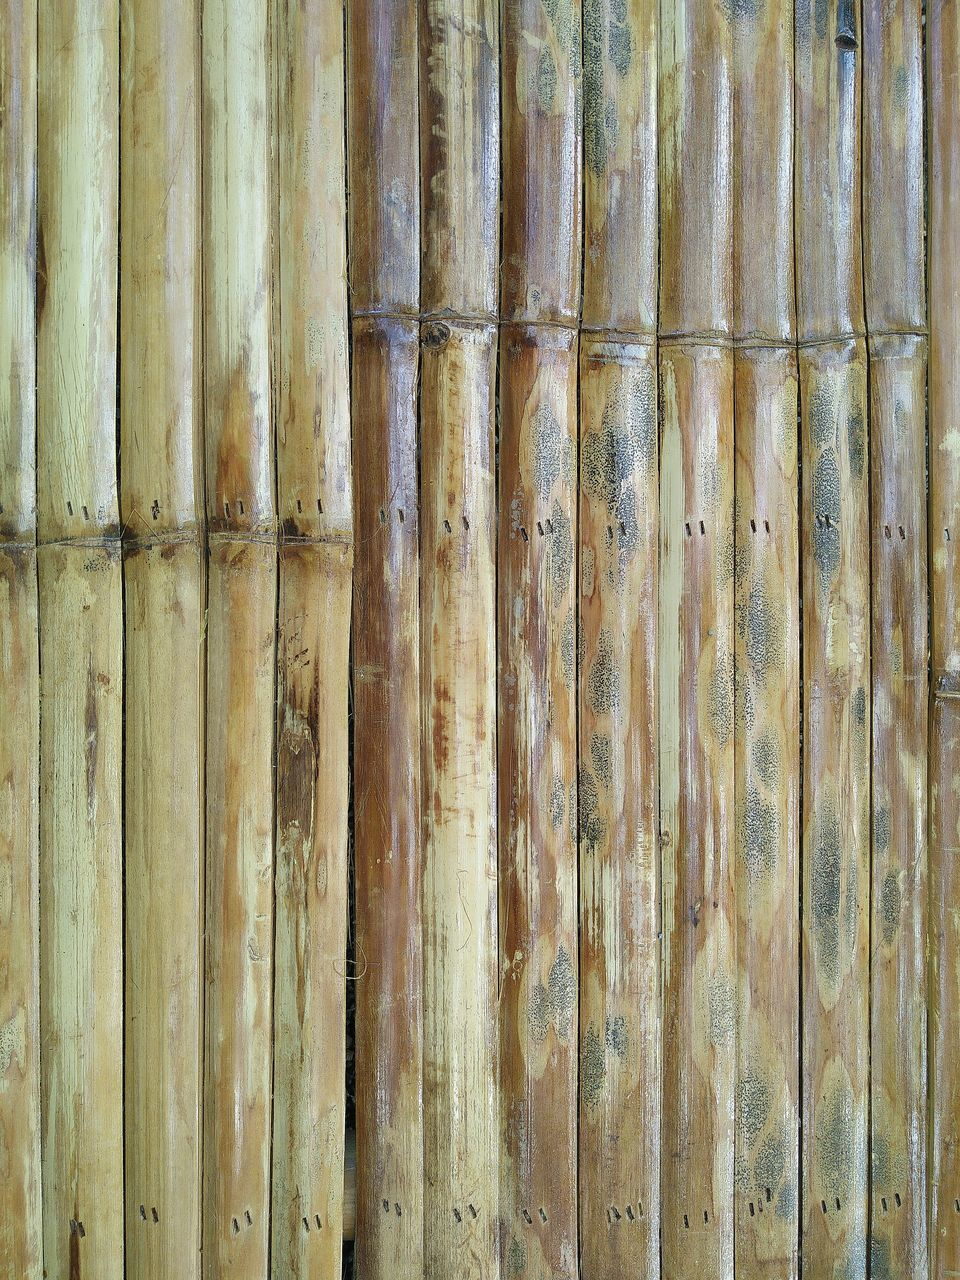 backgrounds, full frame, pattern, wood - material, textured, weathered, no people, material, close-up, day, outdoors, architecture, corrugated iron, nature